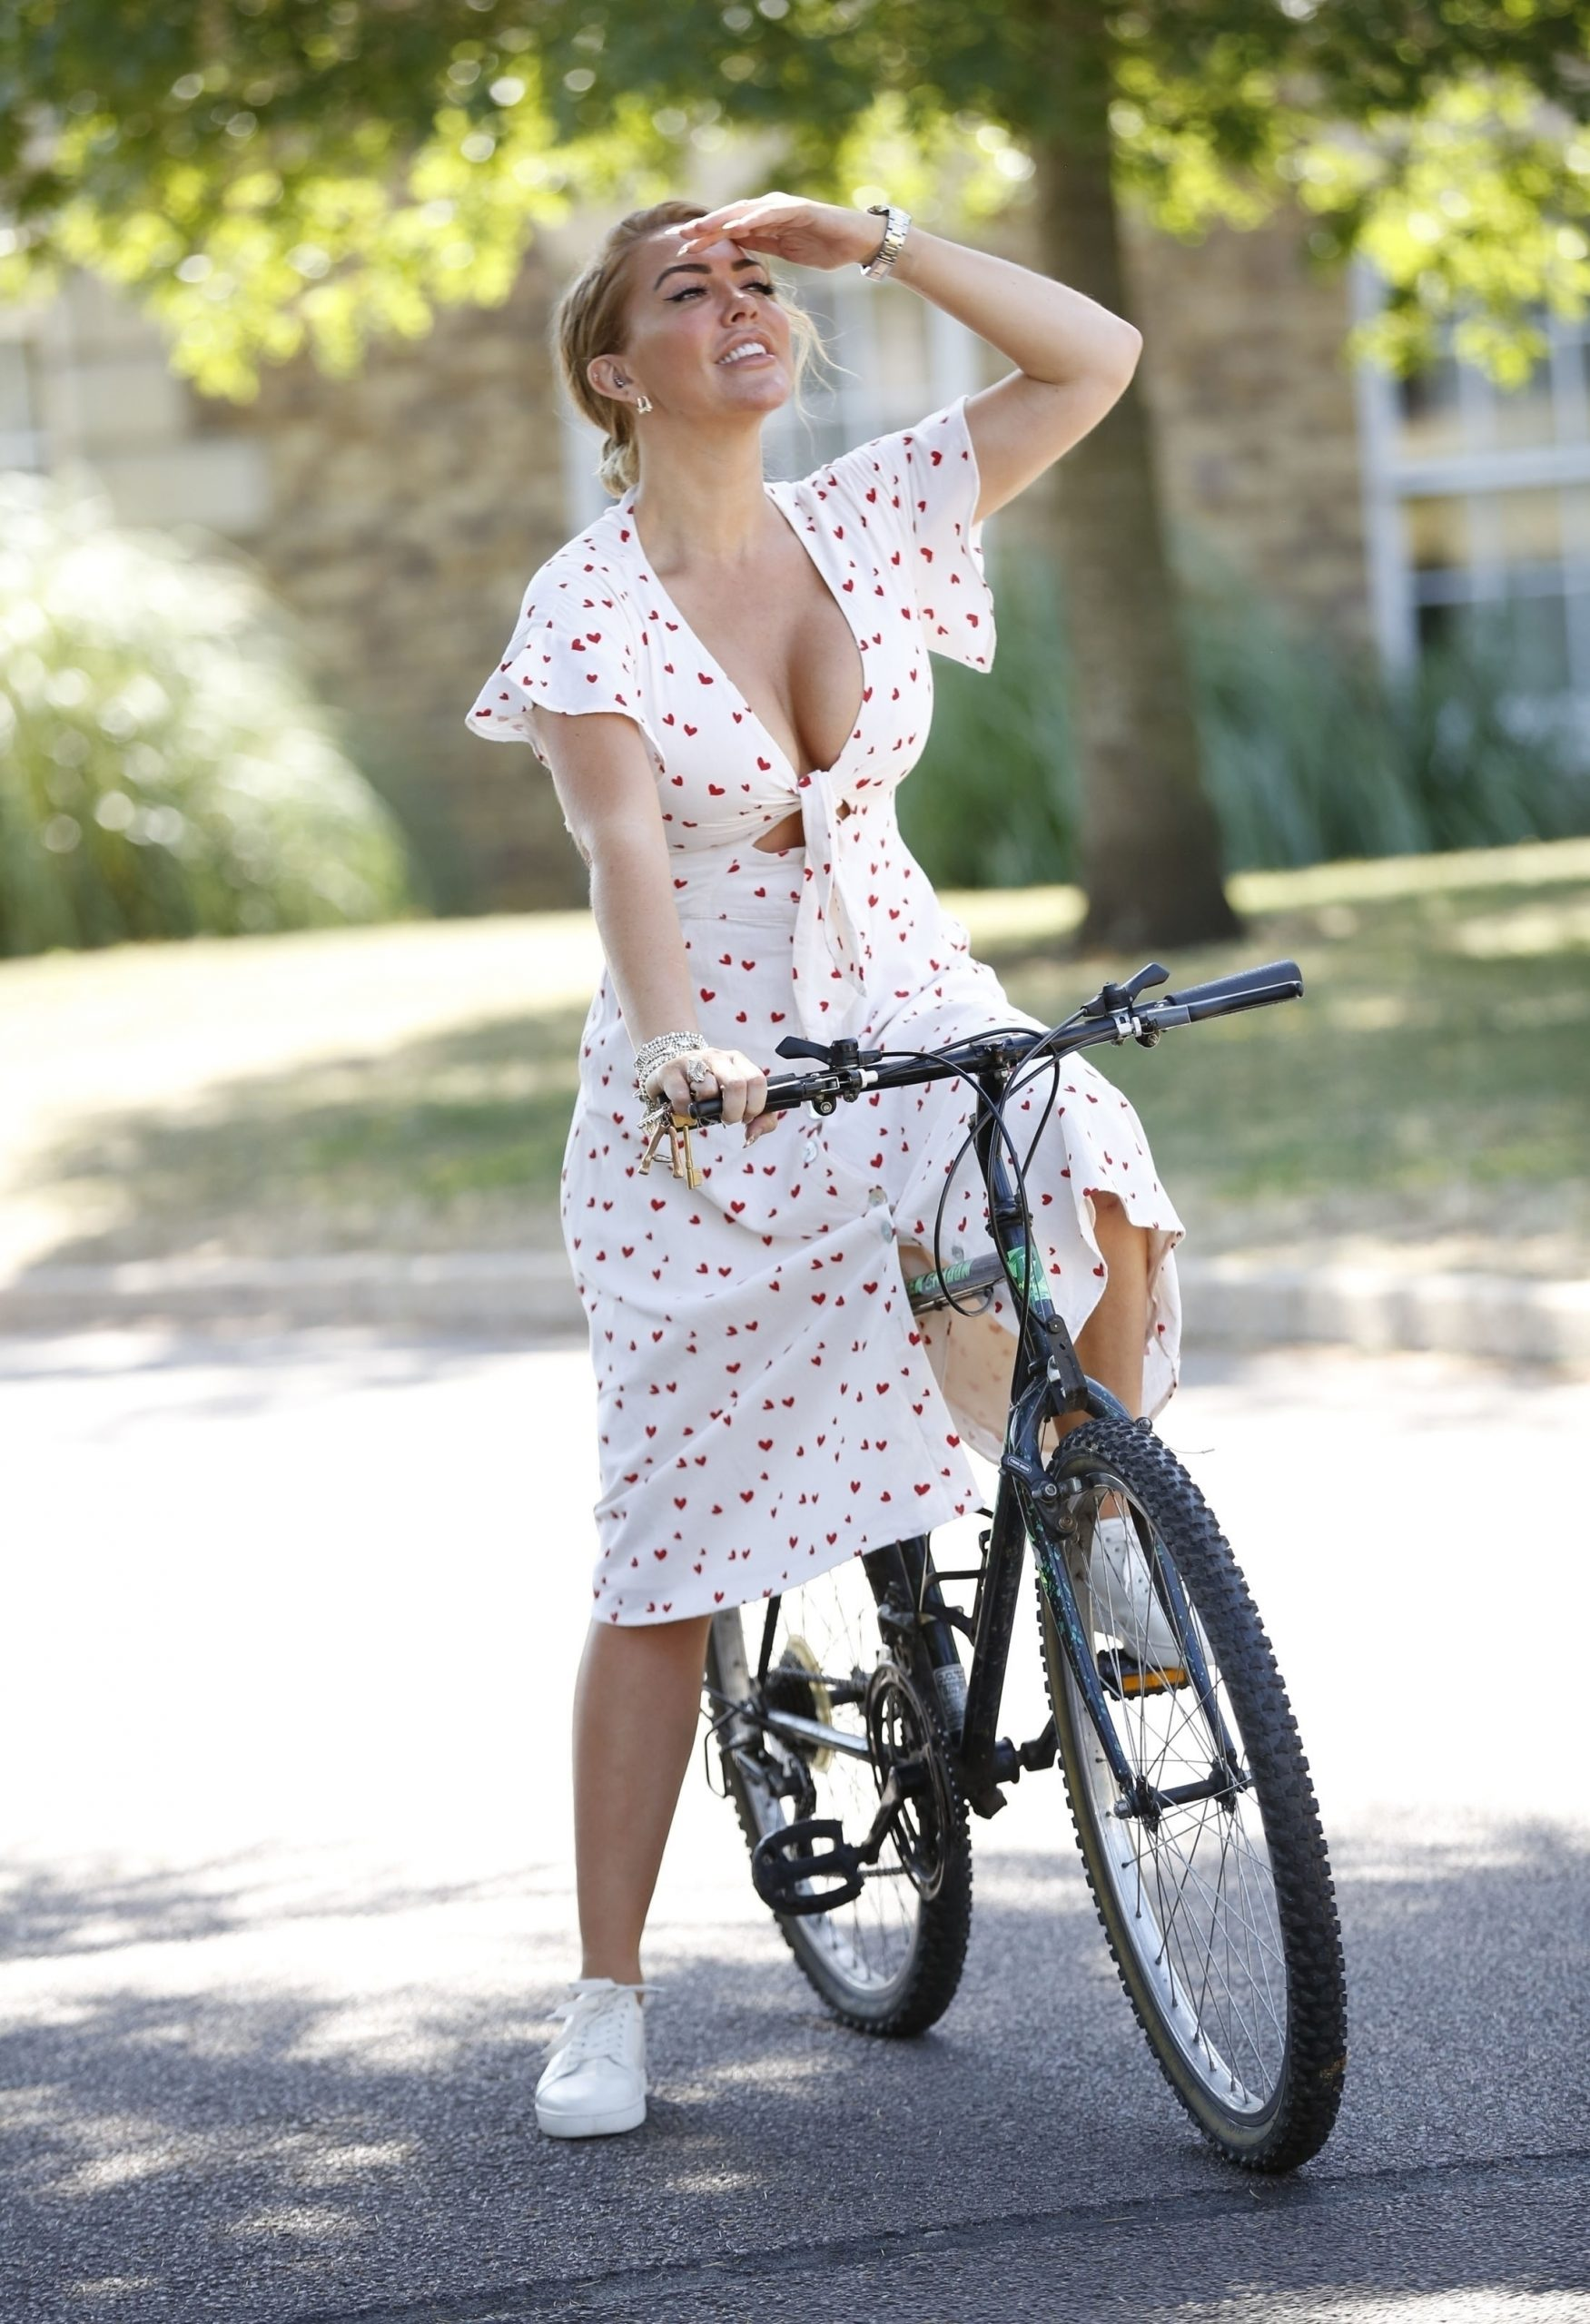 Aisleyne Horgan-Wallace - Out for a bike ride